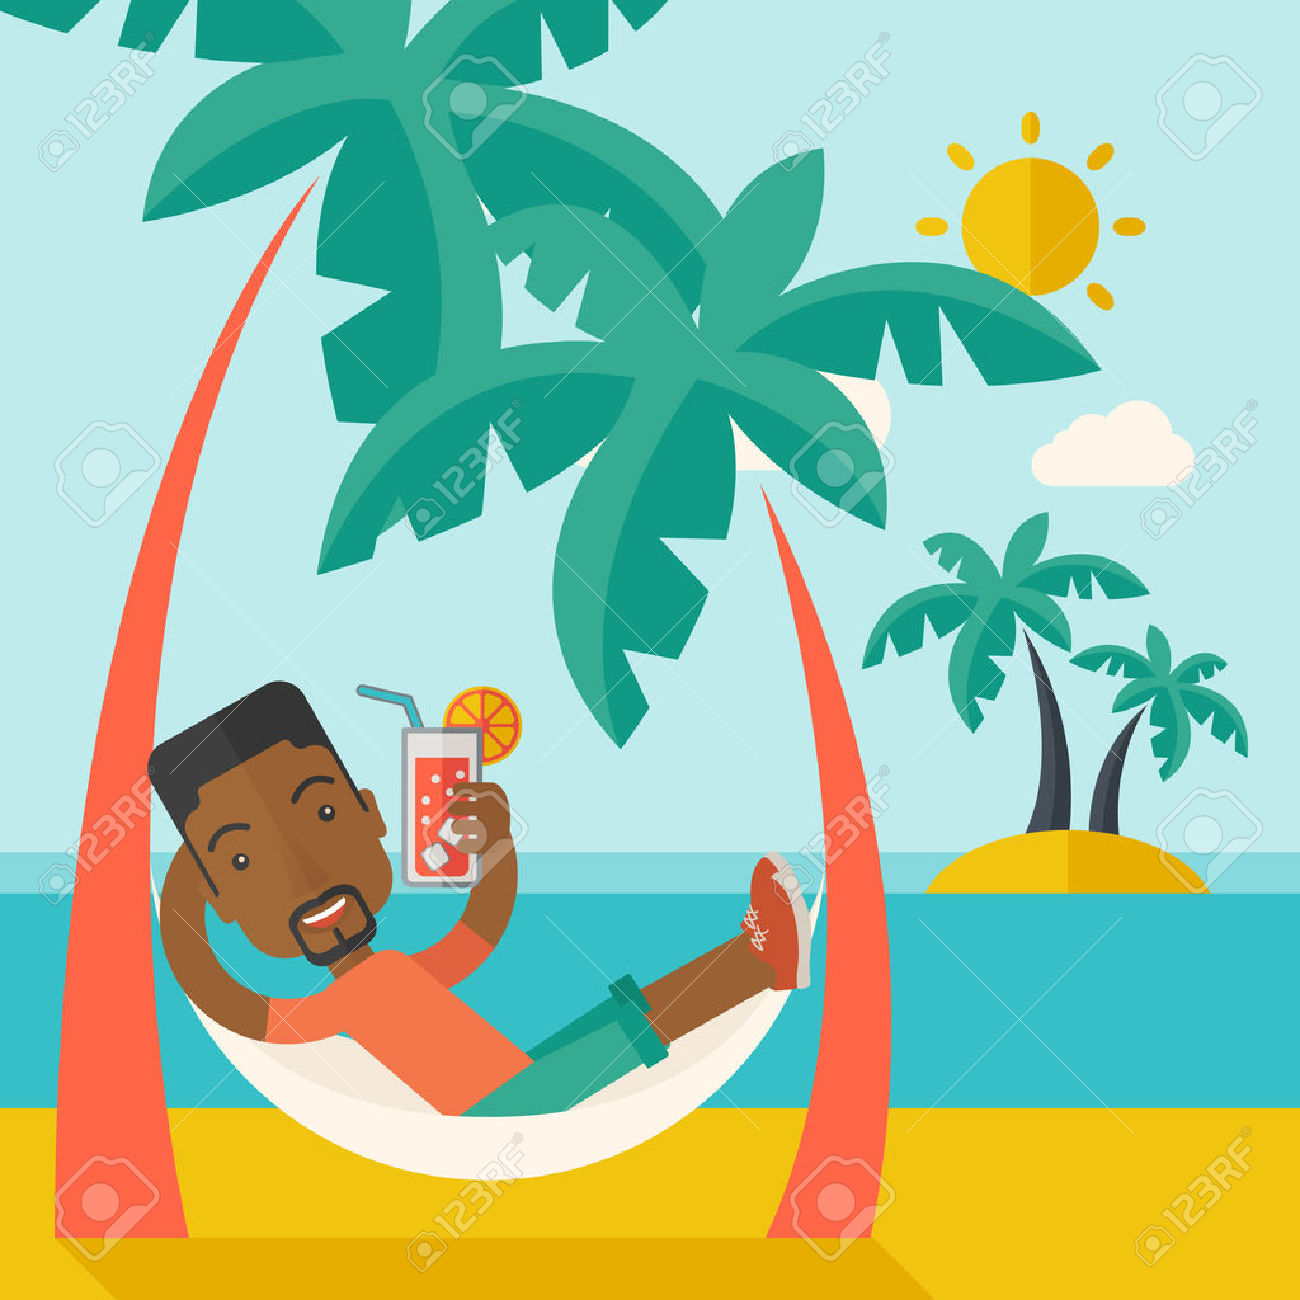 Relaxing In The Sun Clipart.